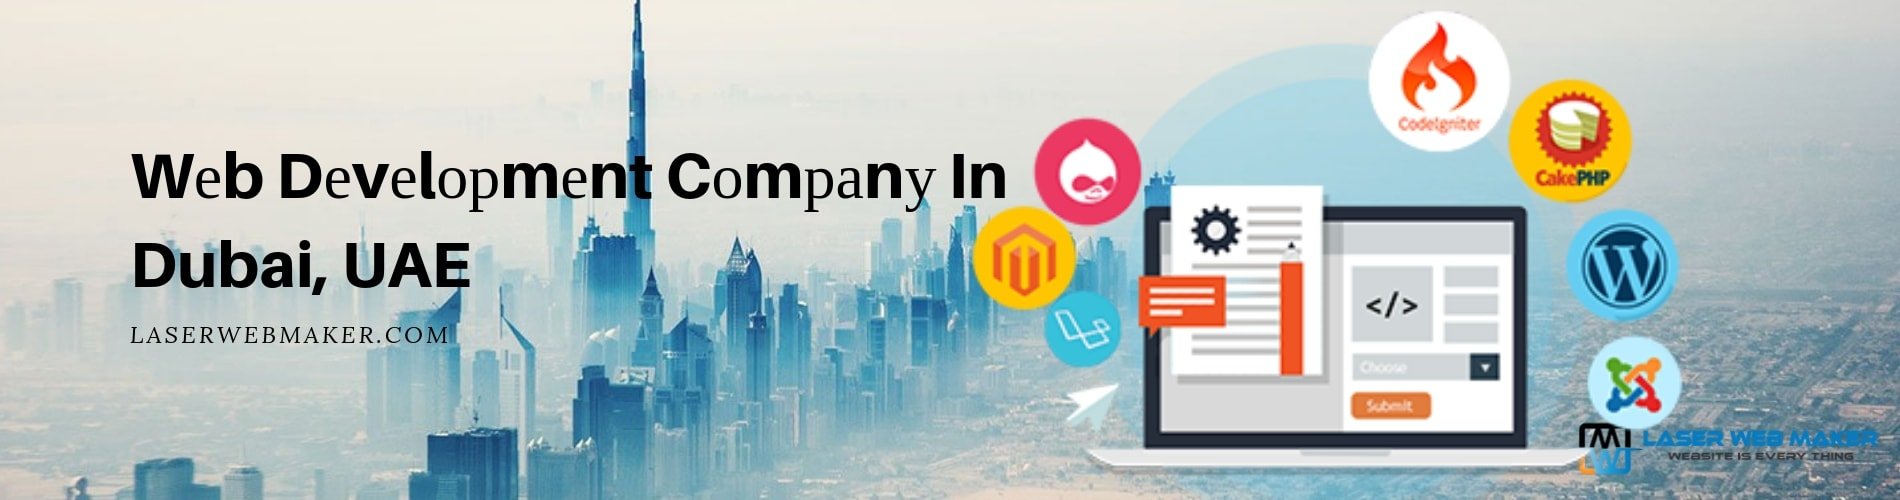 web development company in dubai UAE